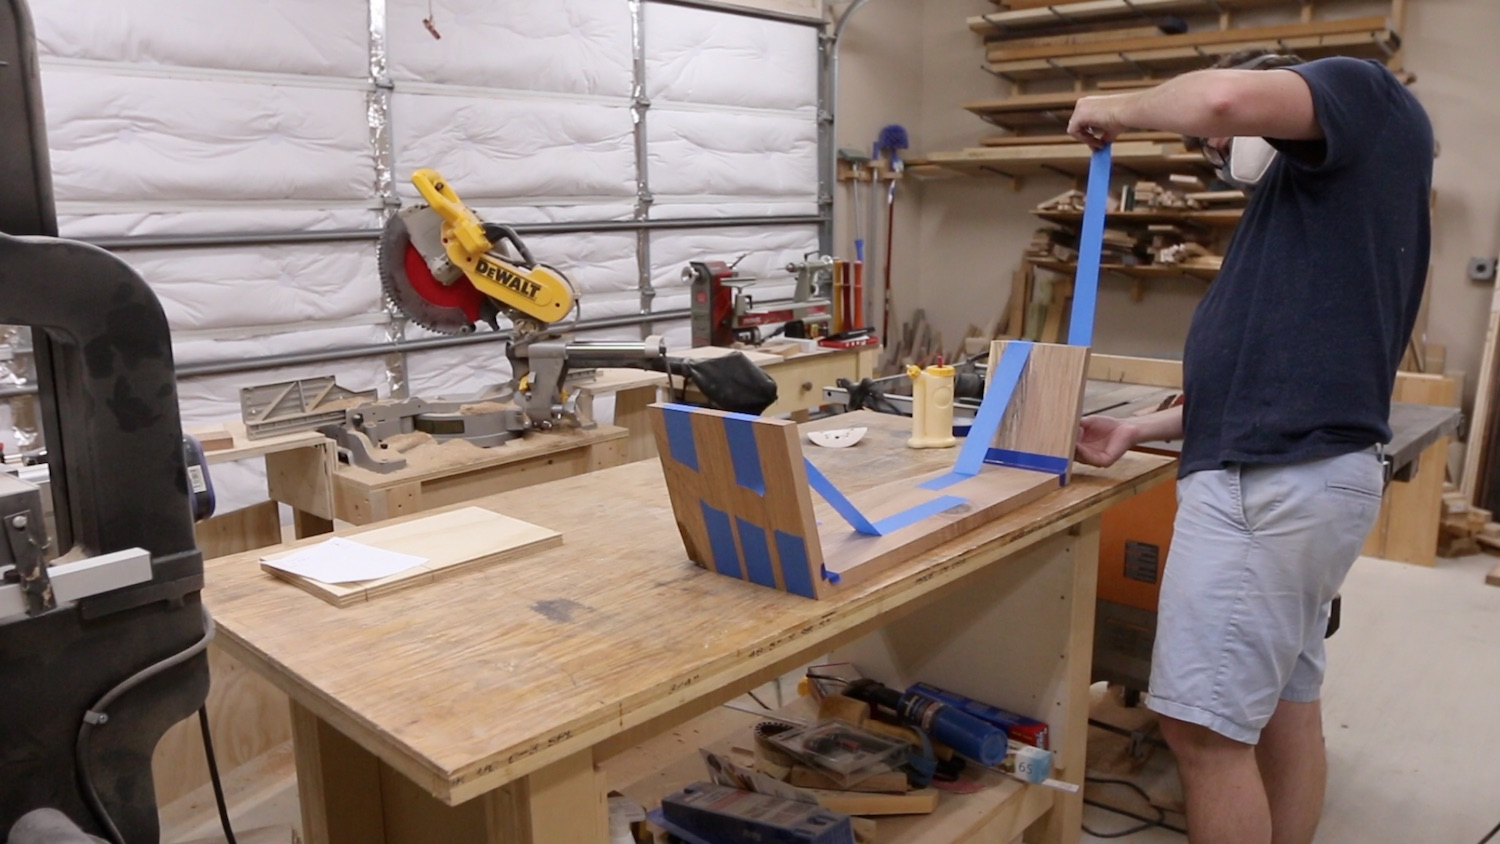 Picture of GLUING AND JOINING THE PIECES